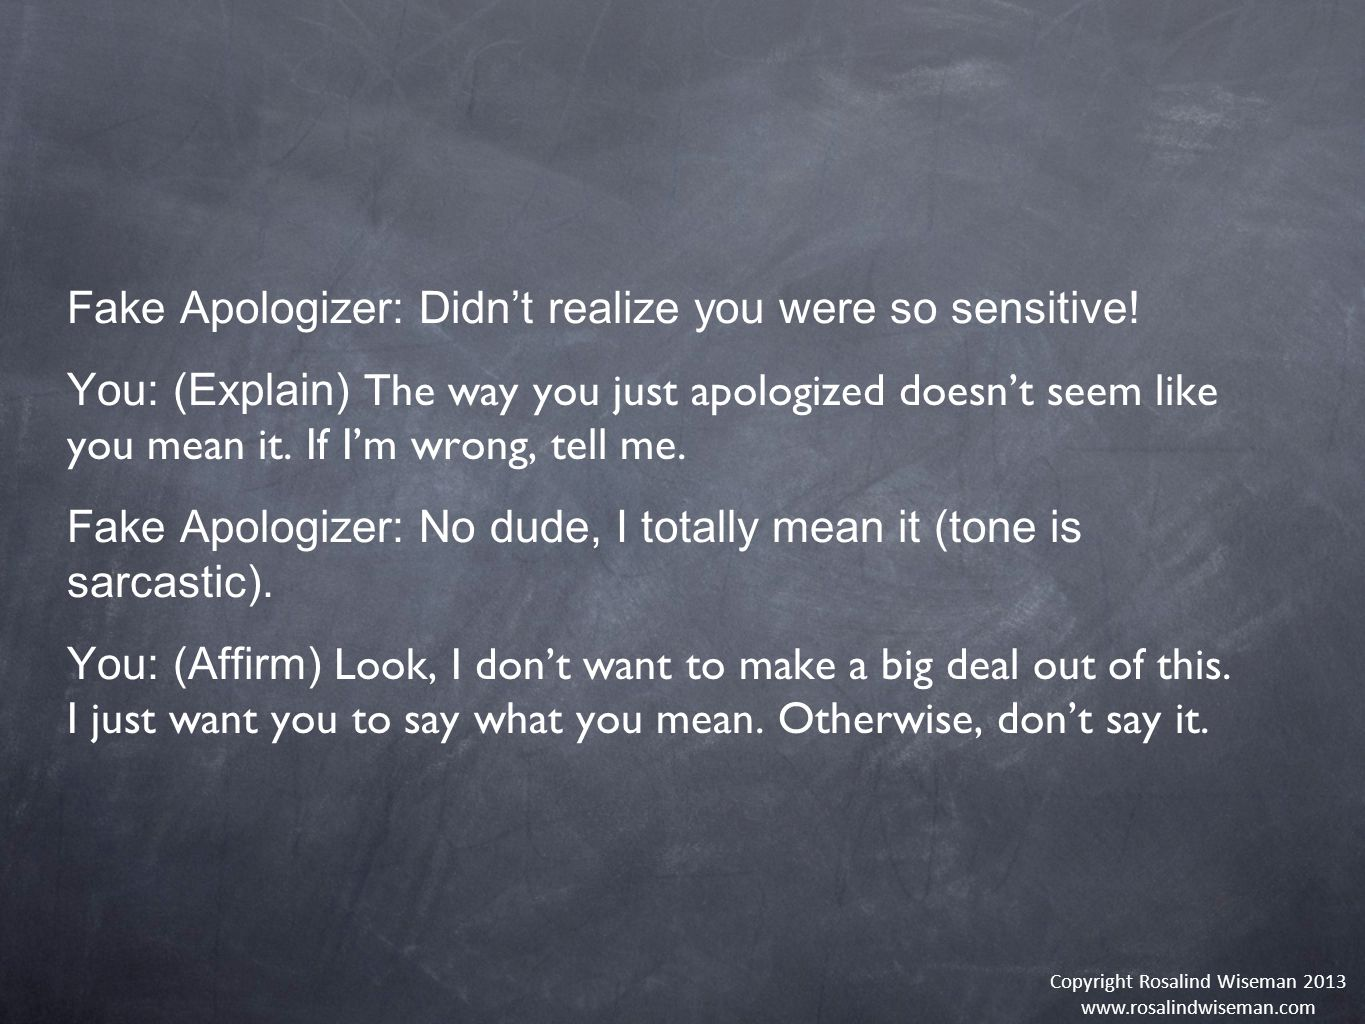 Copyright Rosalind Wiseman 2013 www.rosalindwiseman.com Fake Apologizer: Didn't realize you were so sensitive.